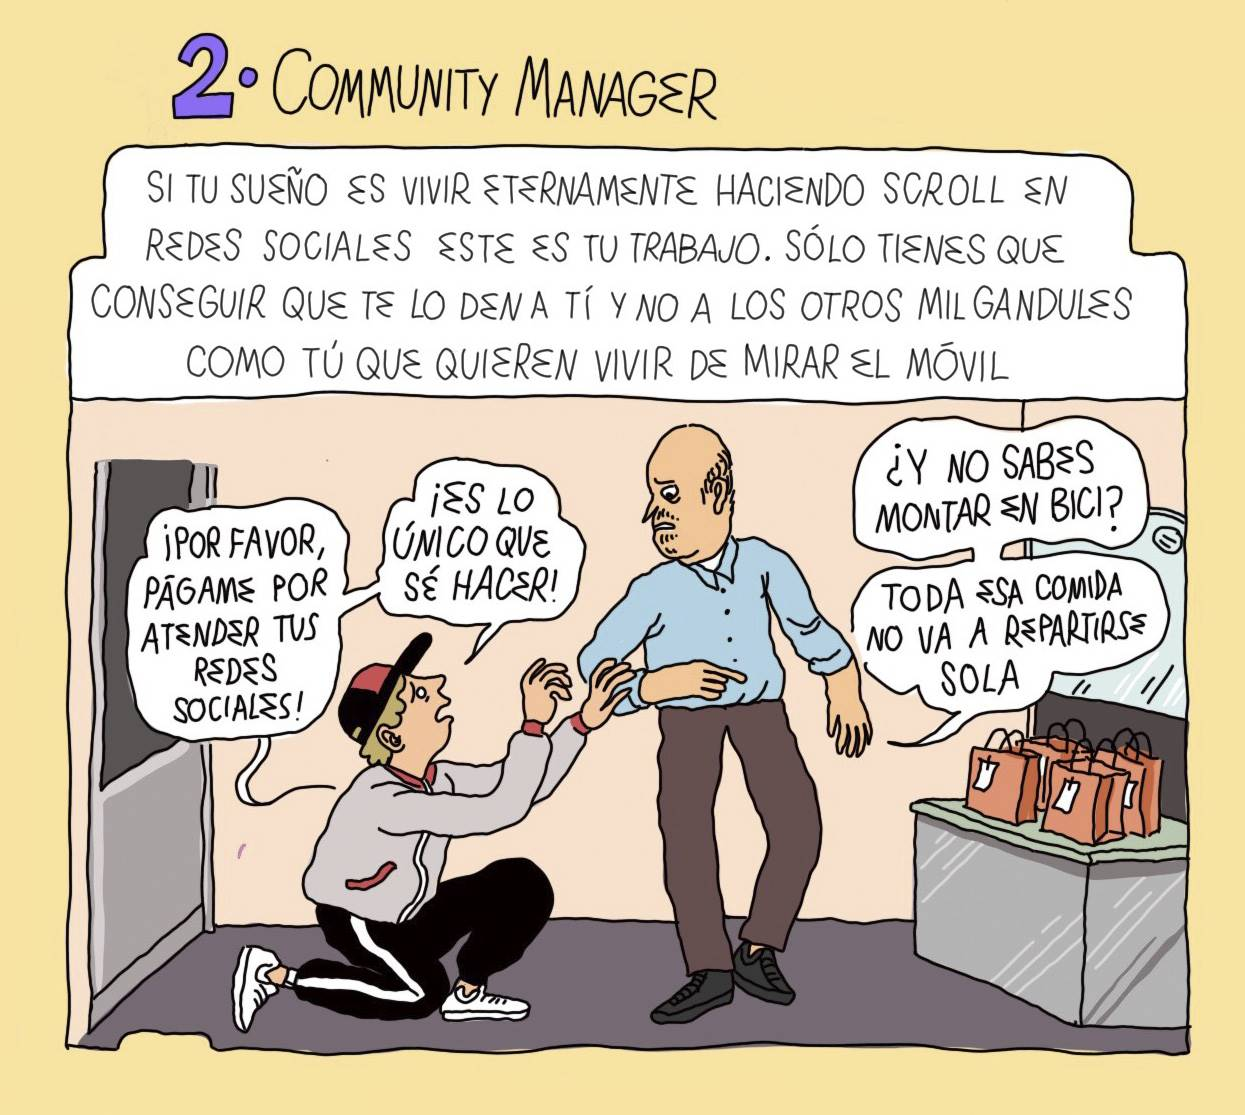 2. Community Manager